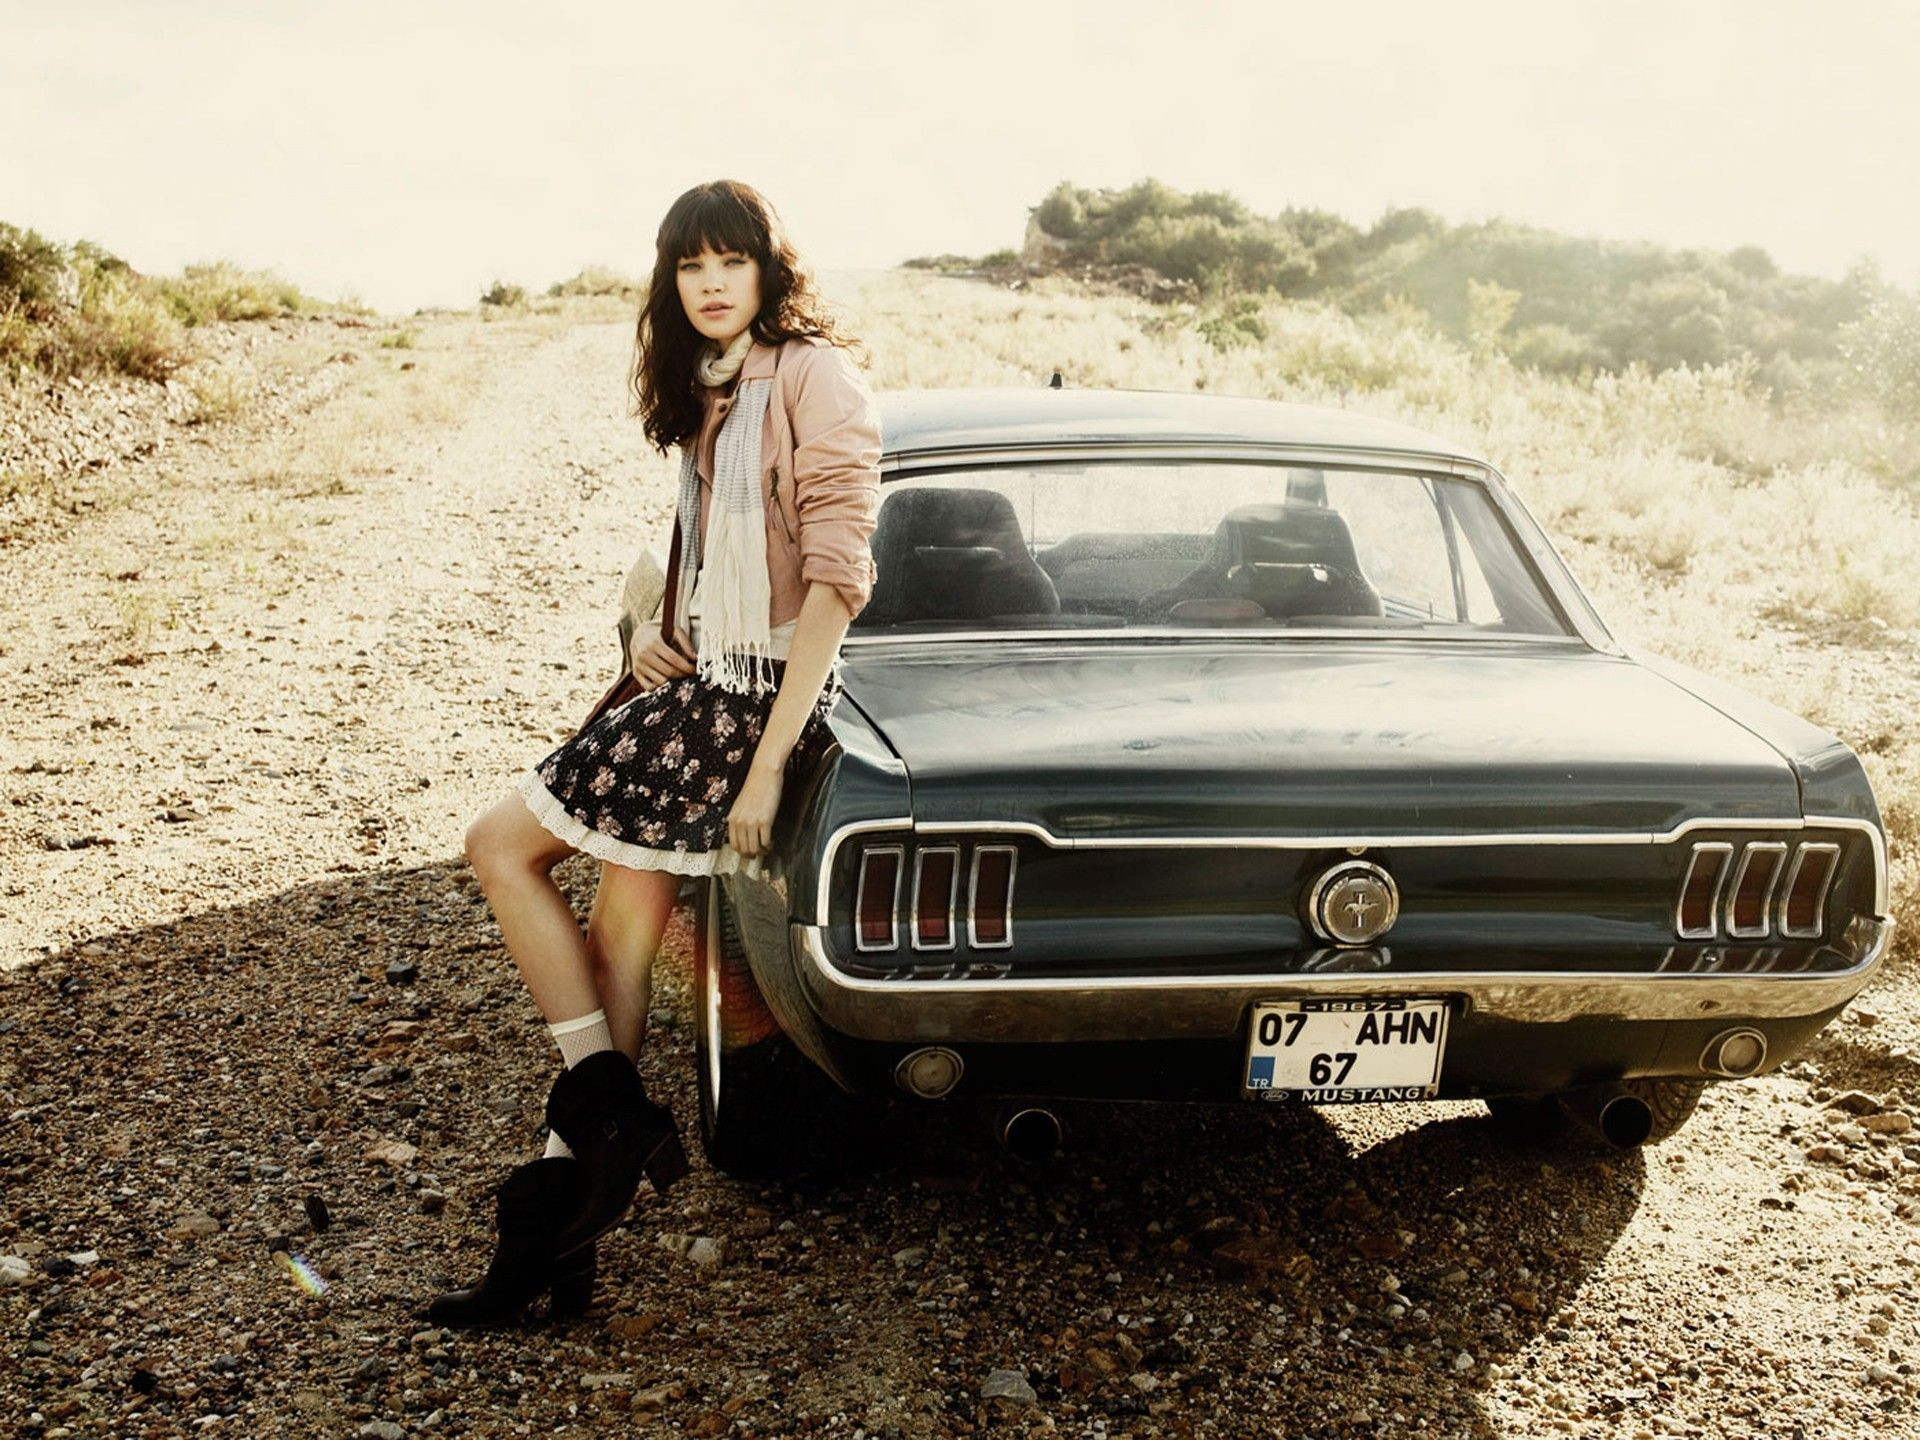 Women Cars Roads Vehicles Ford Mustang Girls With Cars Gravel Rear View Cars  Hd Wallpaper